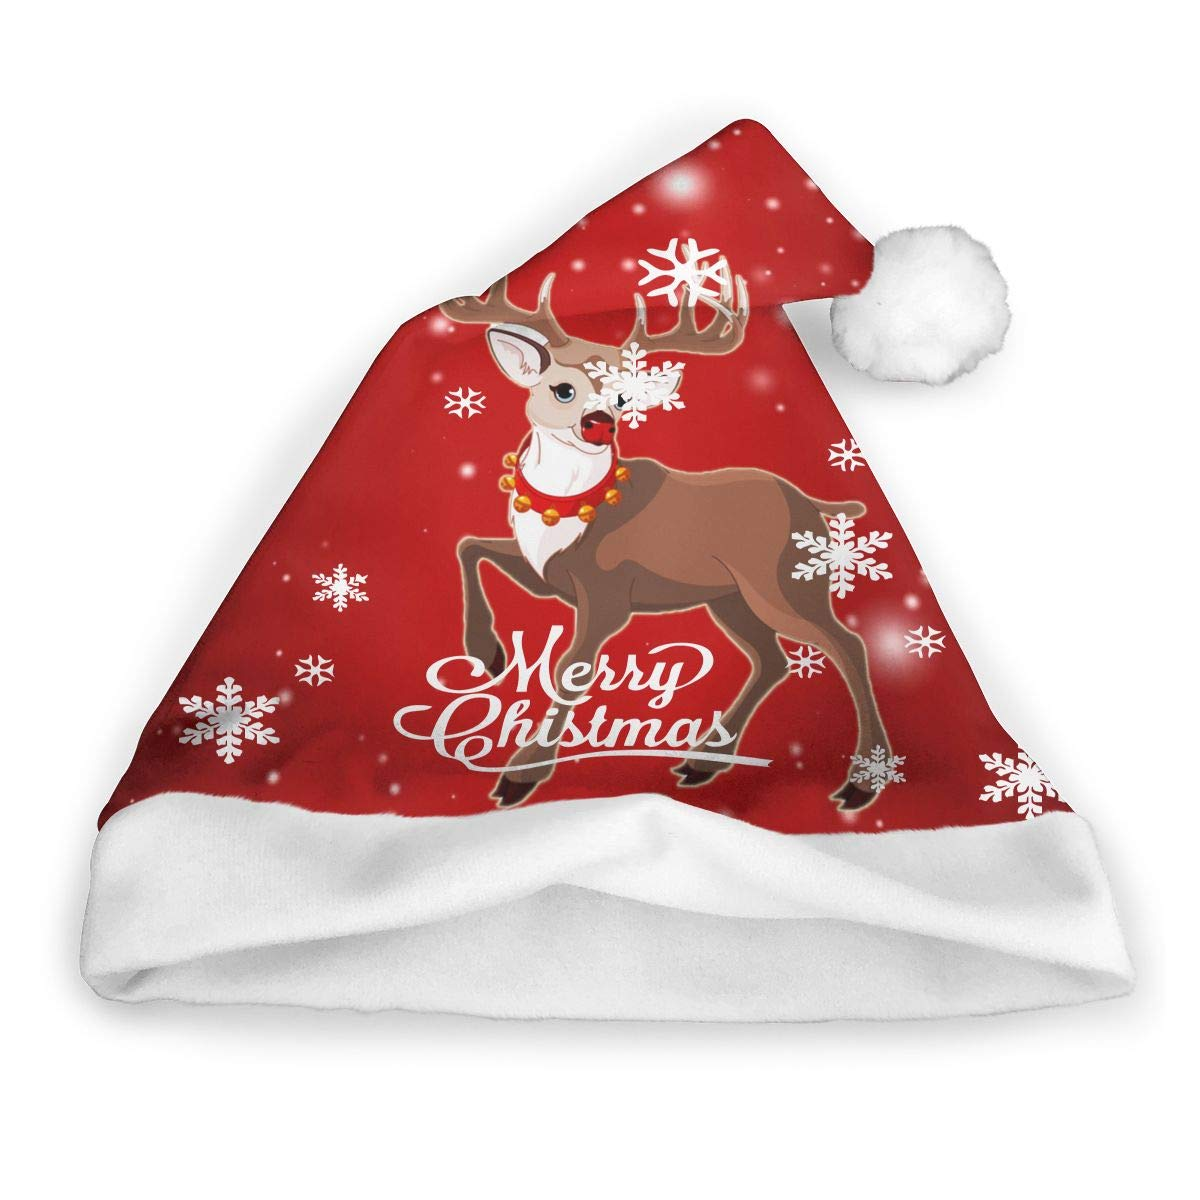 989b1e0870883 Santa Hat Printed Rudolph The Red-Nosed Reindeer Christmas Holiday Christmas  Caps Winter Hat Xmas Hats for Kids and Adult at Amazon Men s Clothing store